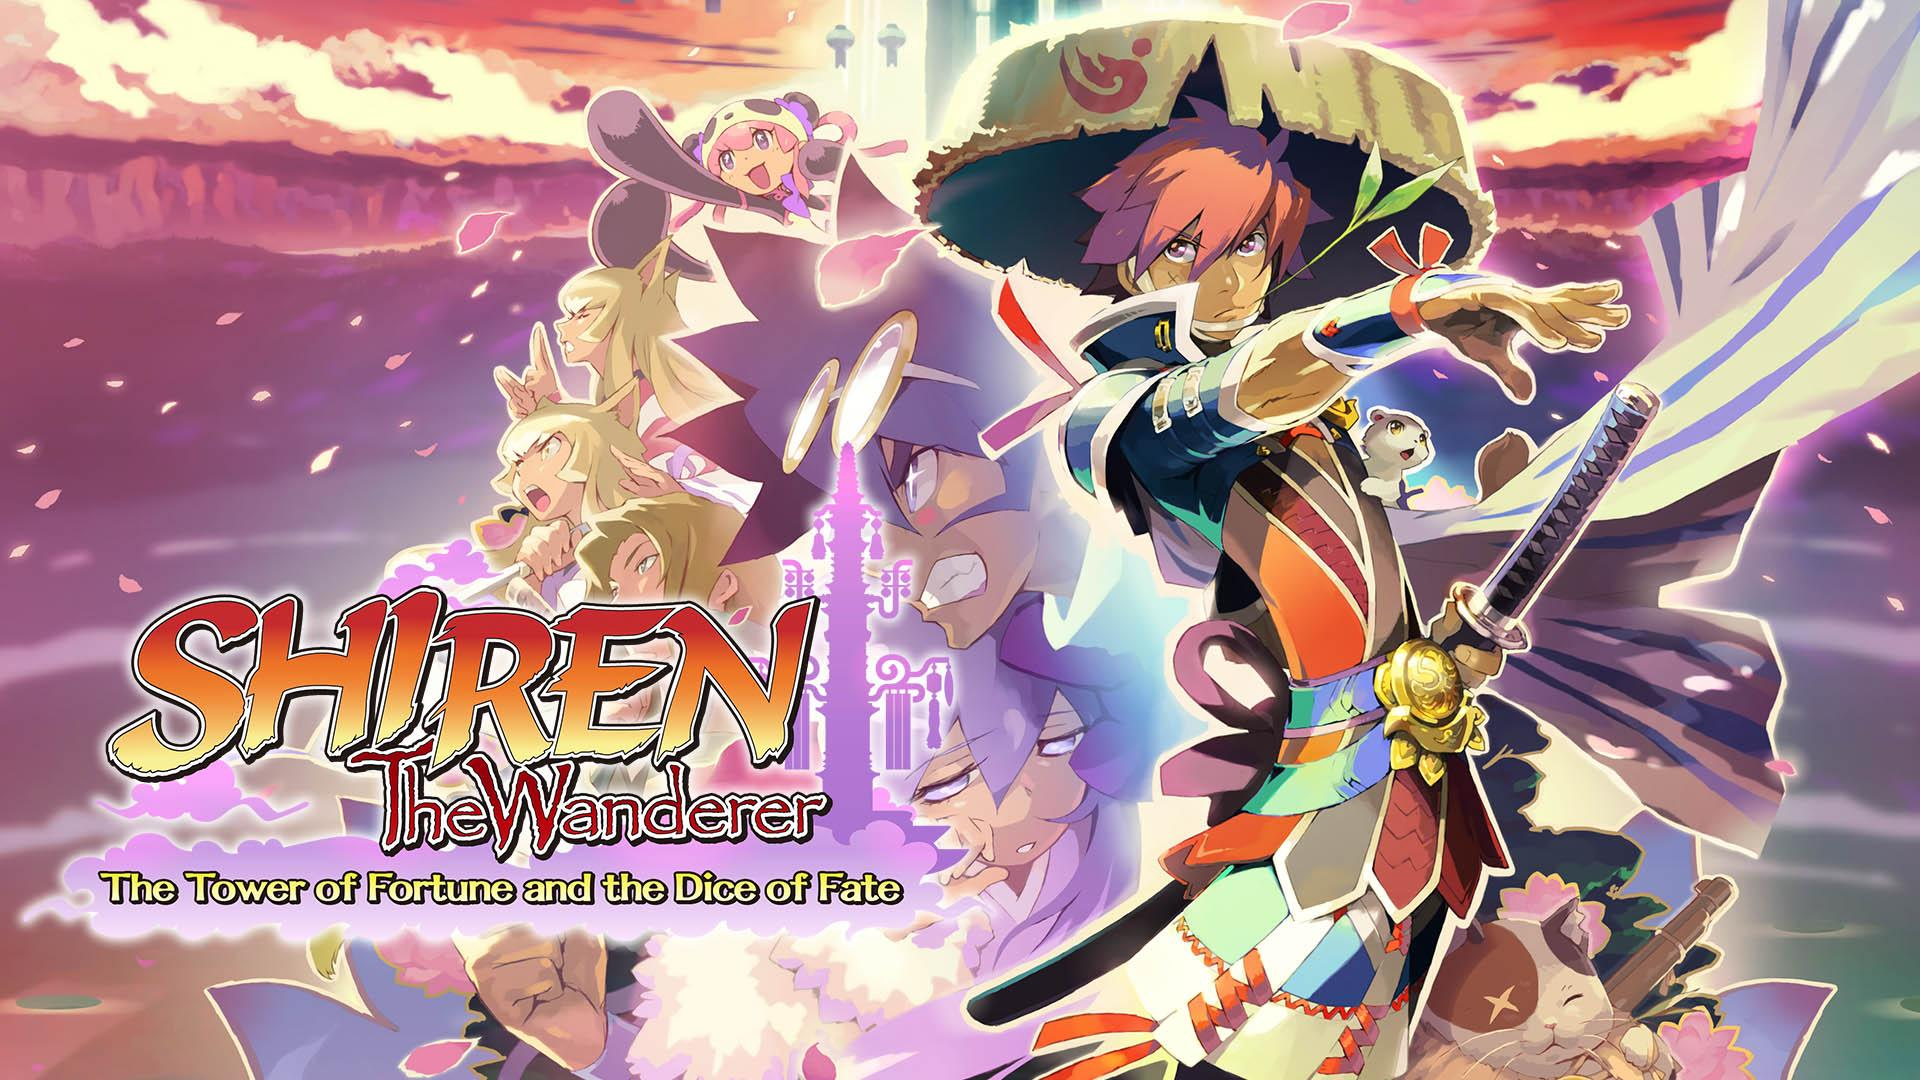 Shiren the Wanderer: The Tower of Fortune and the Dice of Fate выйдет на гибрид от Nintendo 2